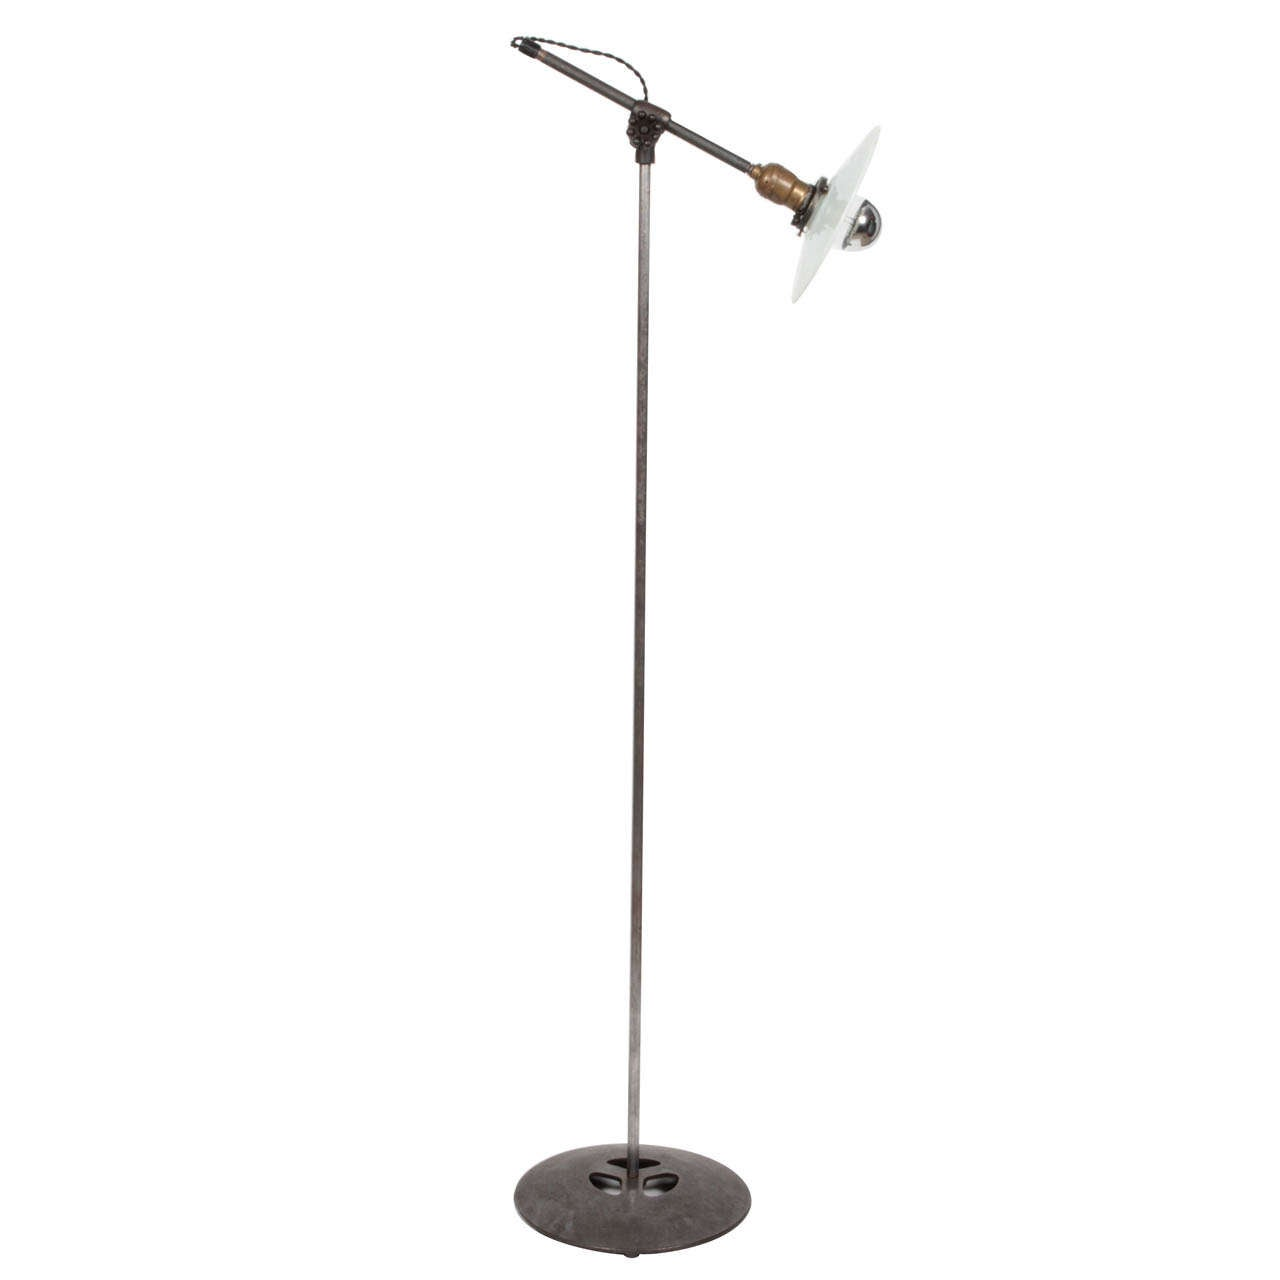 Antique Industrial Floor Lamp by O.C. White